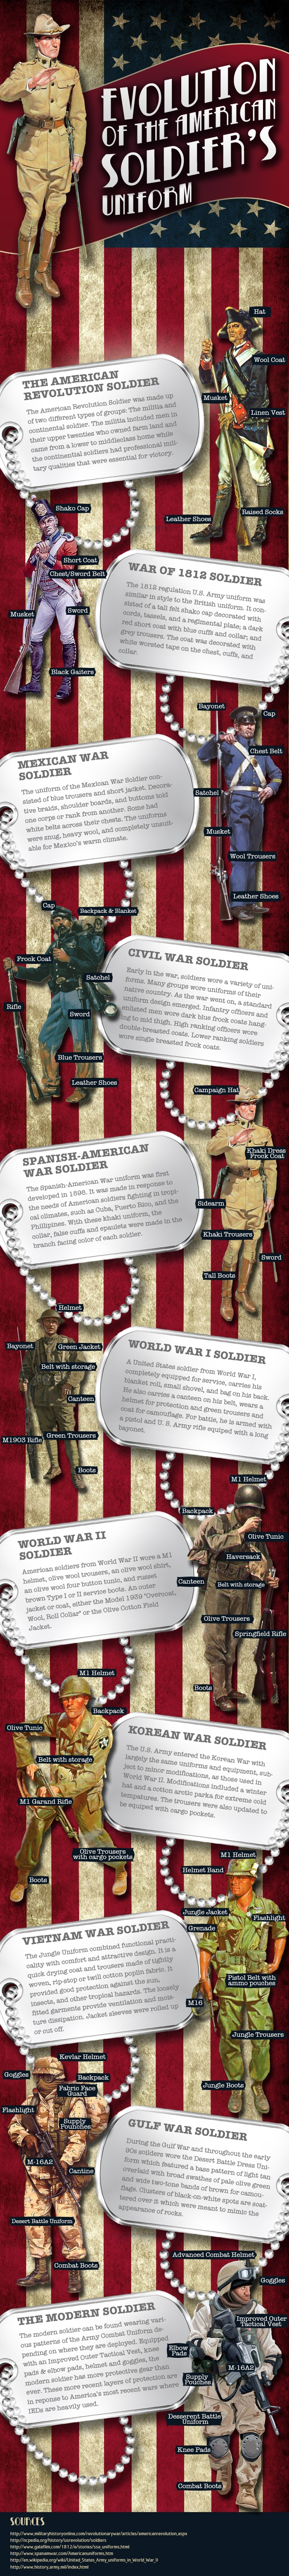 Evolution of military soldier uniforms